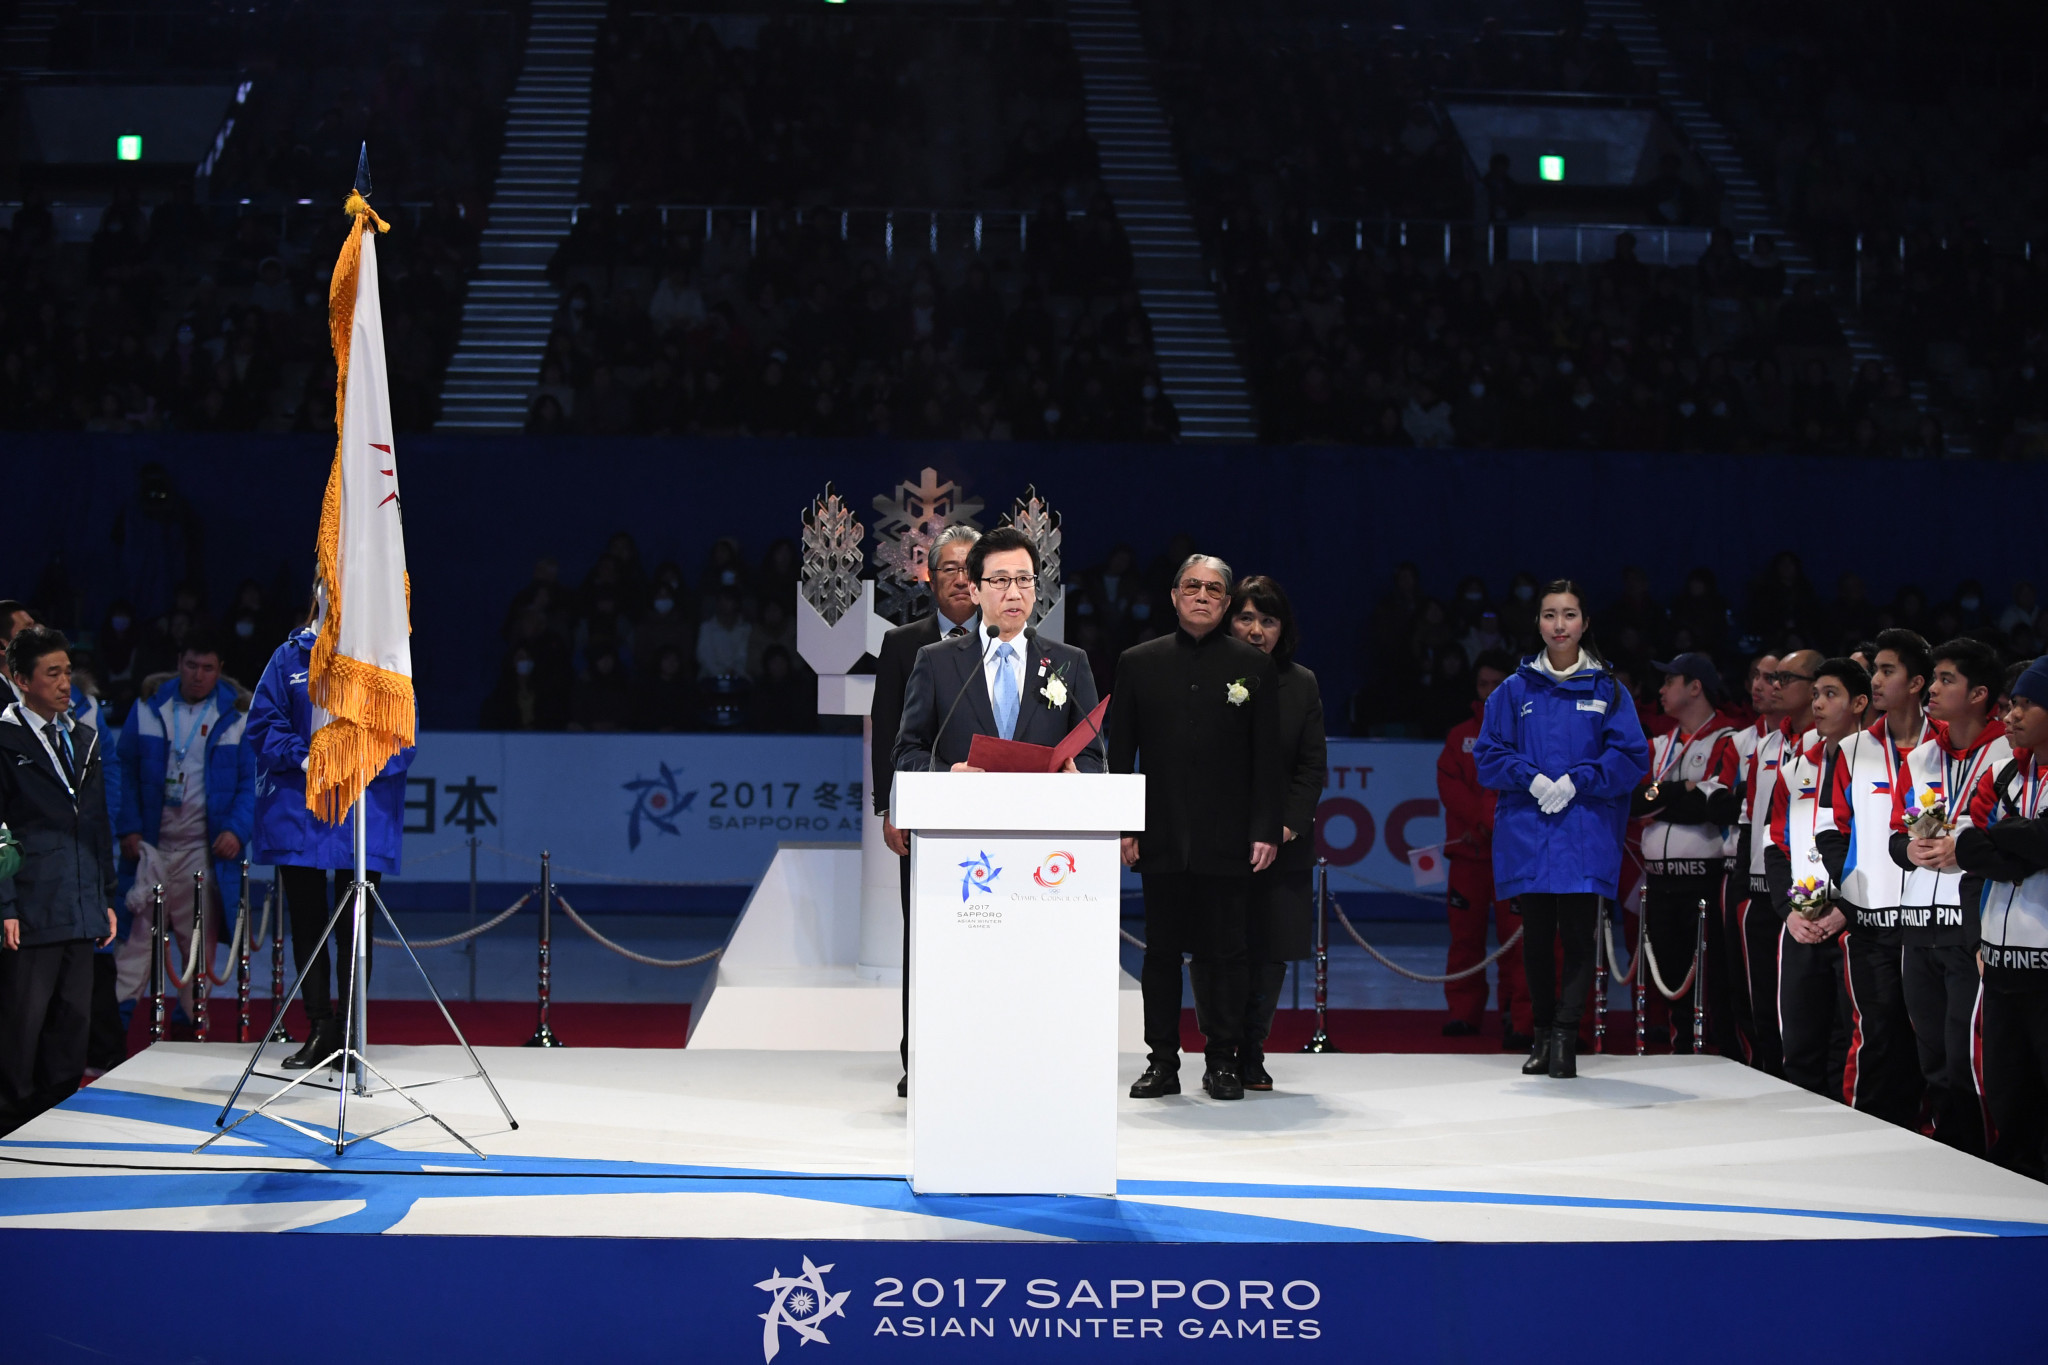 Bach interested in Sapporo Mayor's intentions for 2030 Winter Olympic bid